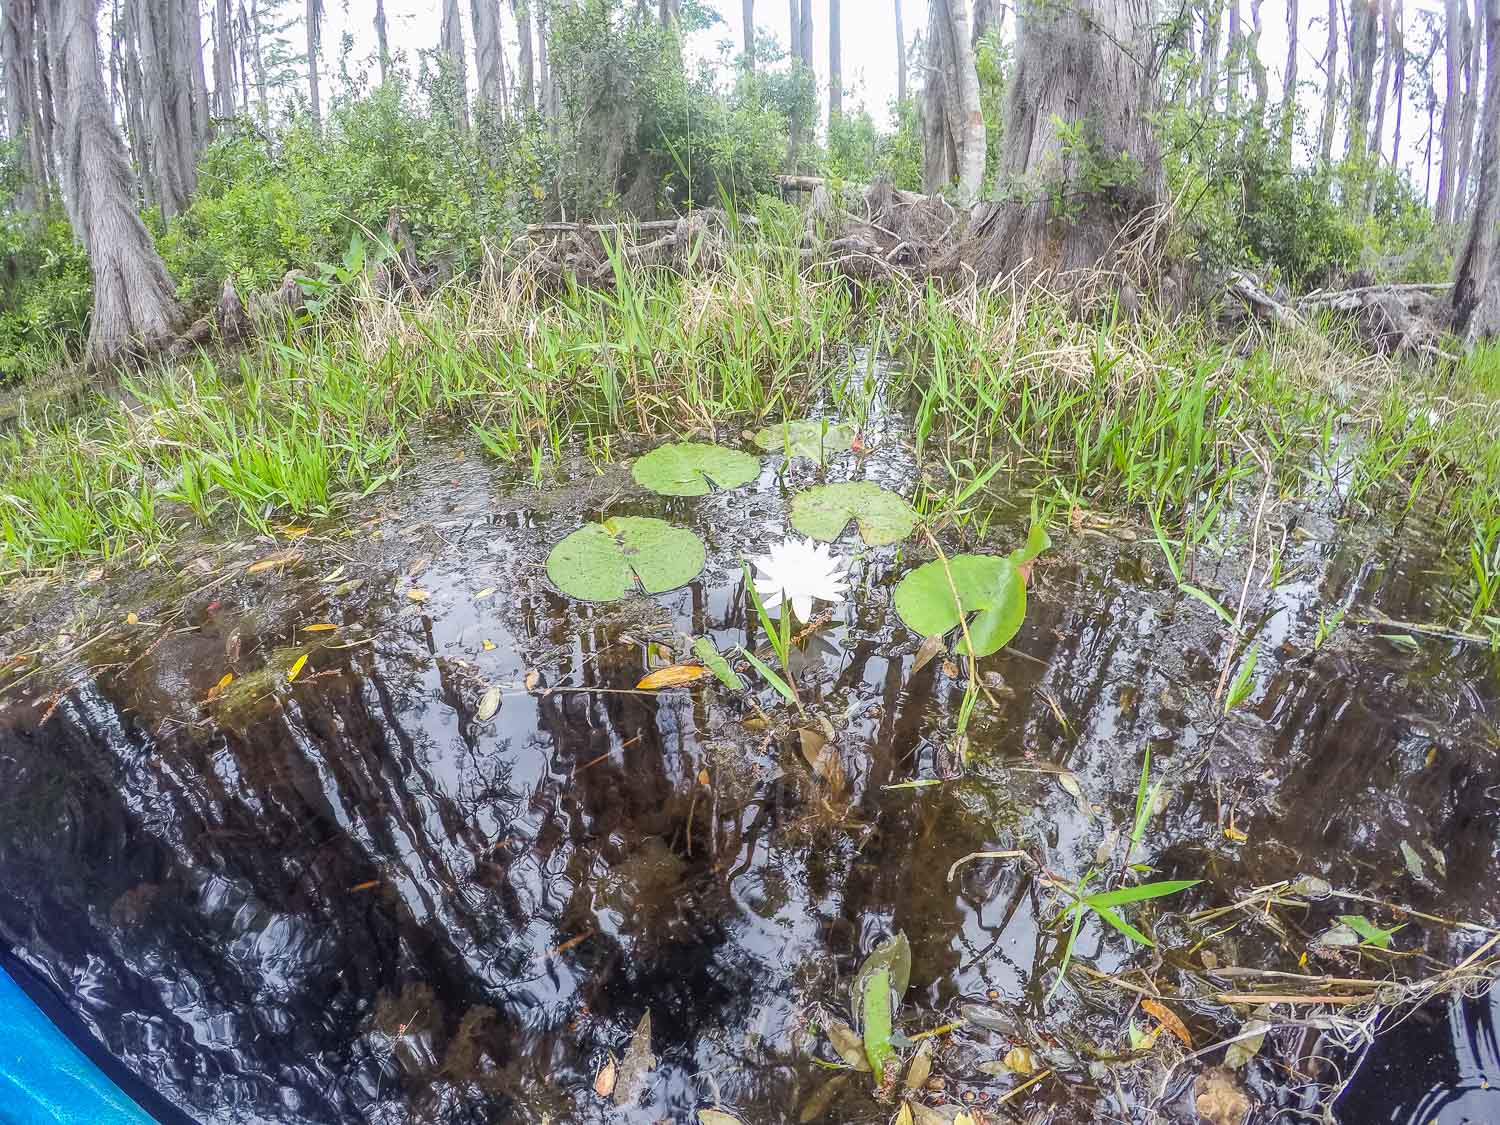 Water lily in Okefenokee swamp